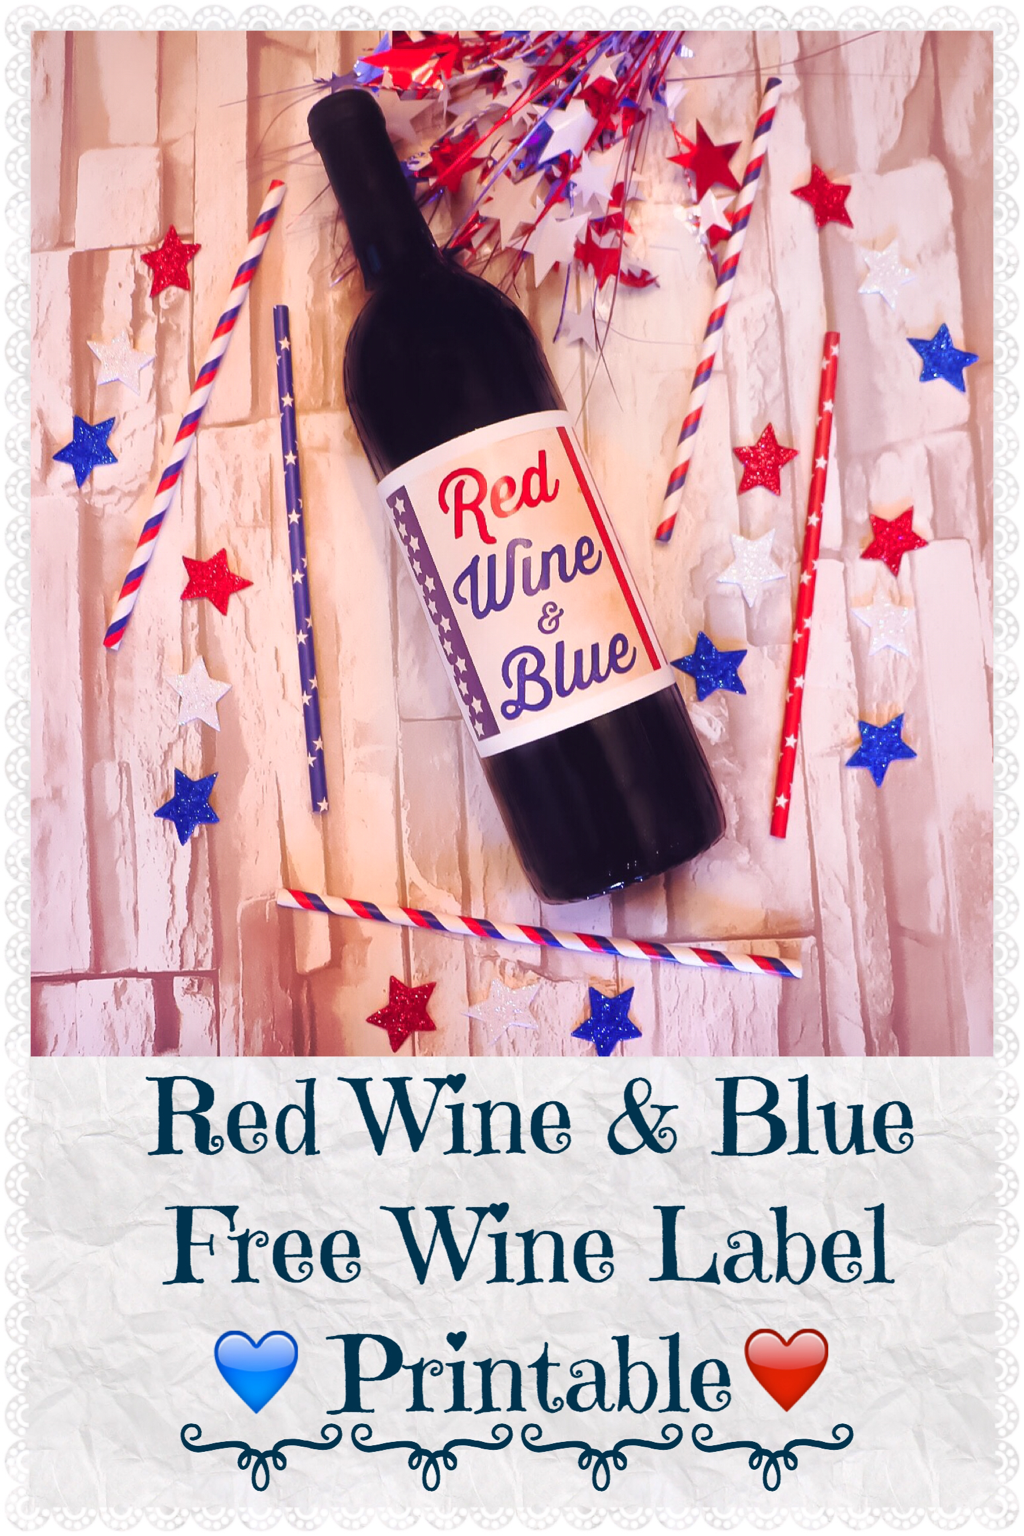 RED WINE & BLUE FREE WINE LABEL PRINTABLE